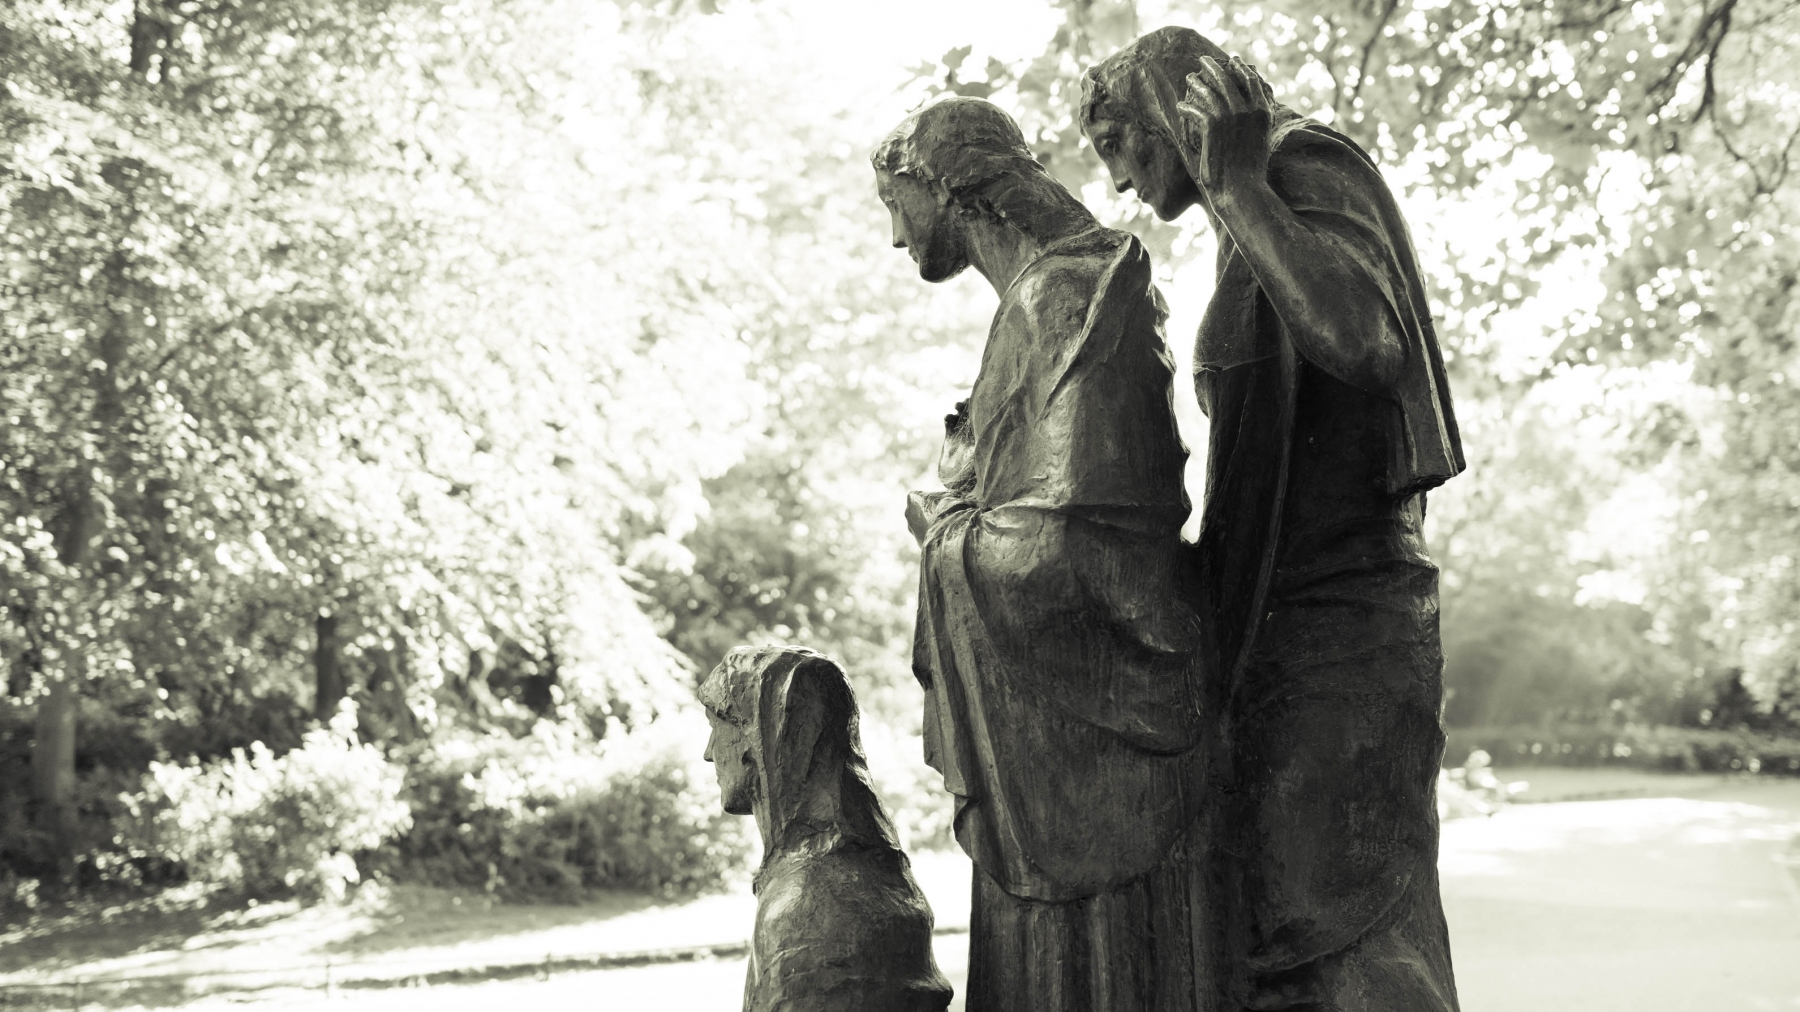 The fountain of the Three Fates, St Stephen's Green, Dublin.